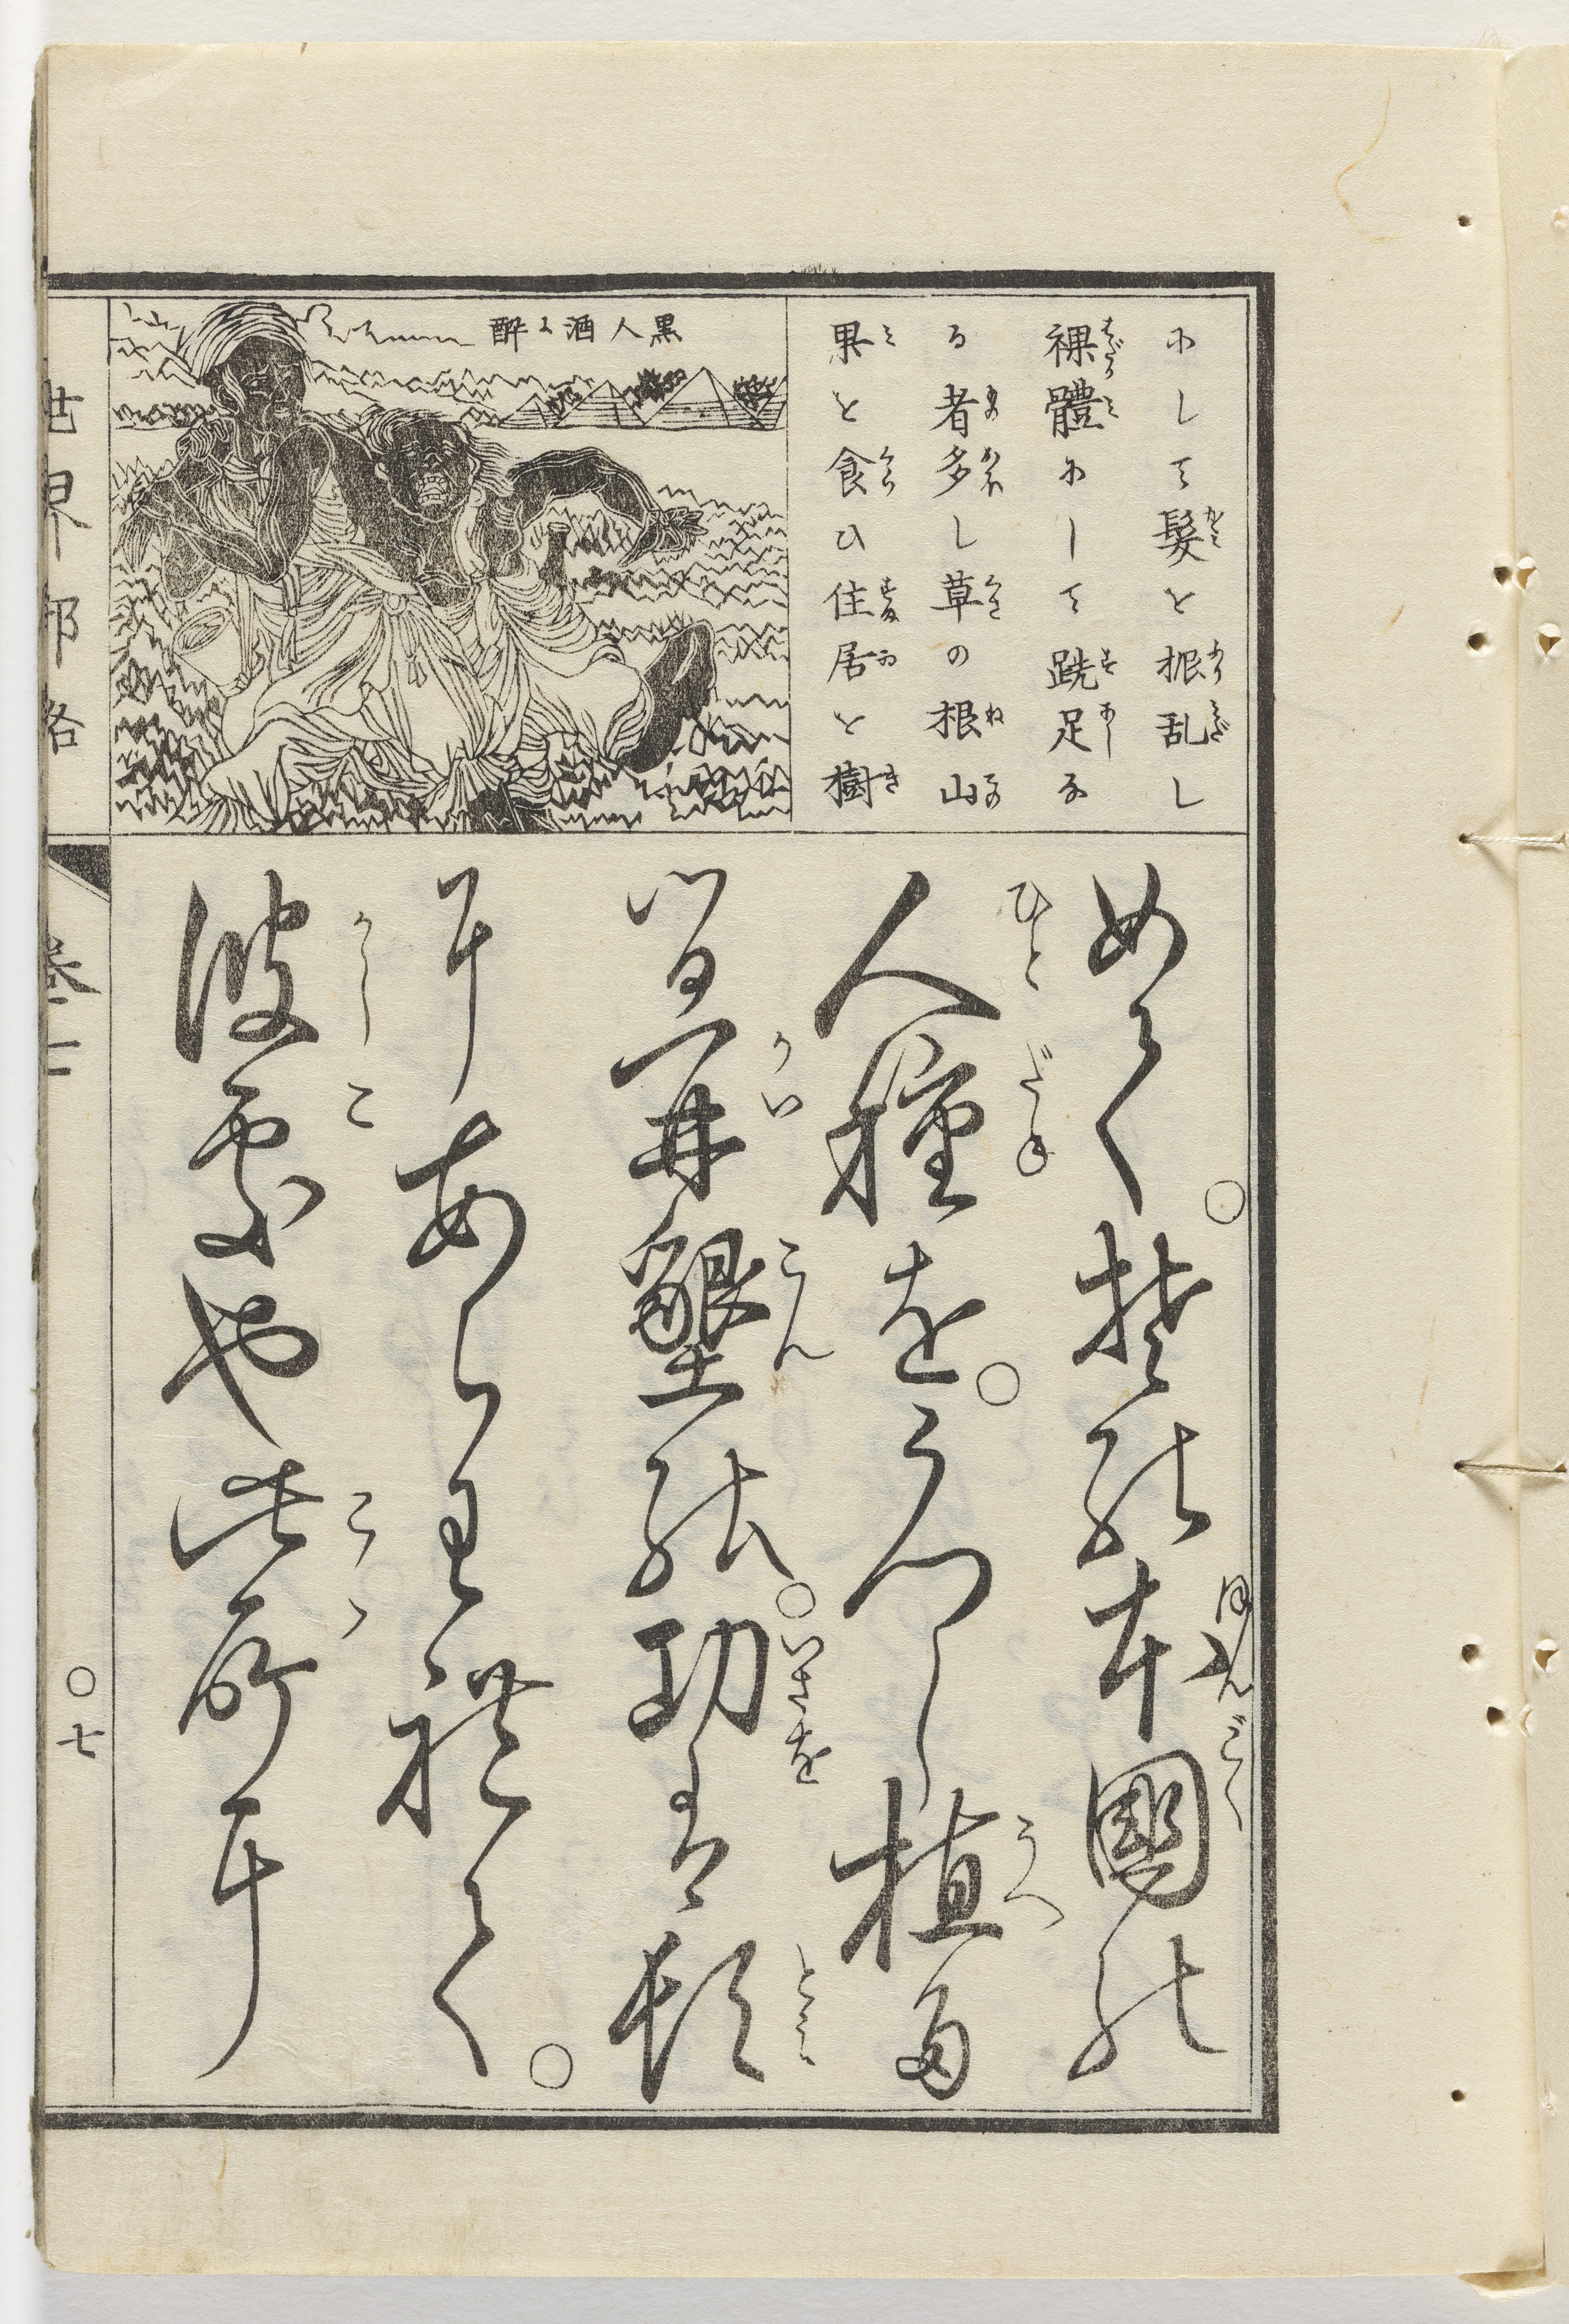 Page of Japanese woodblock text and illustration